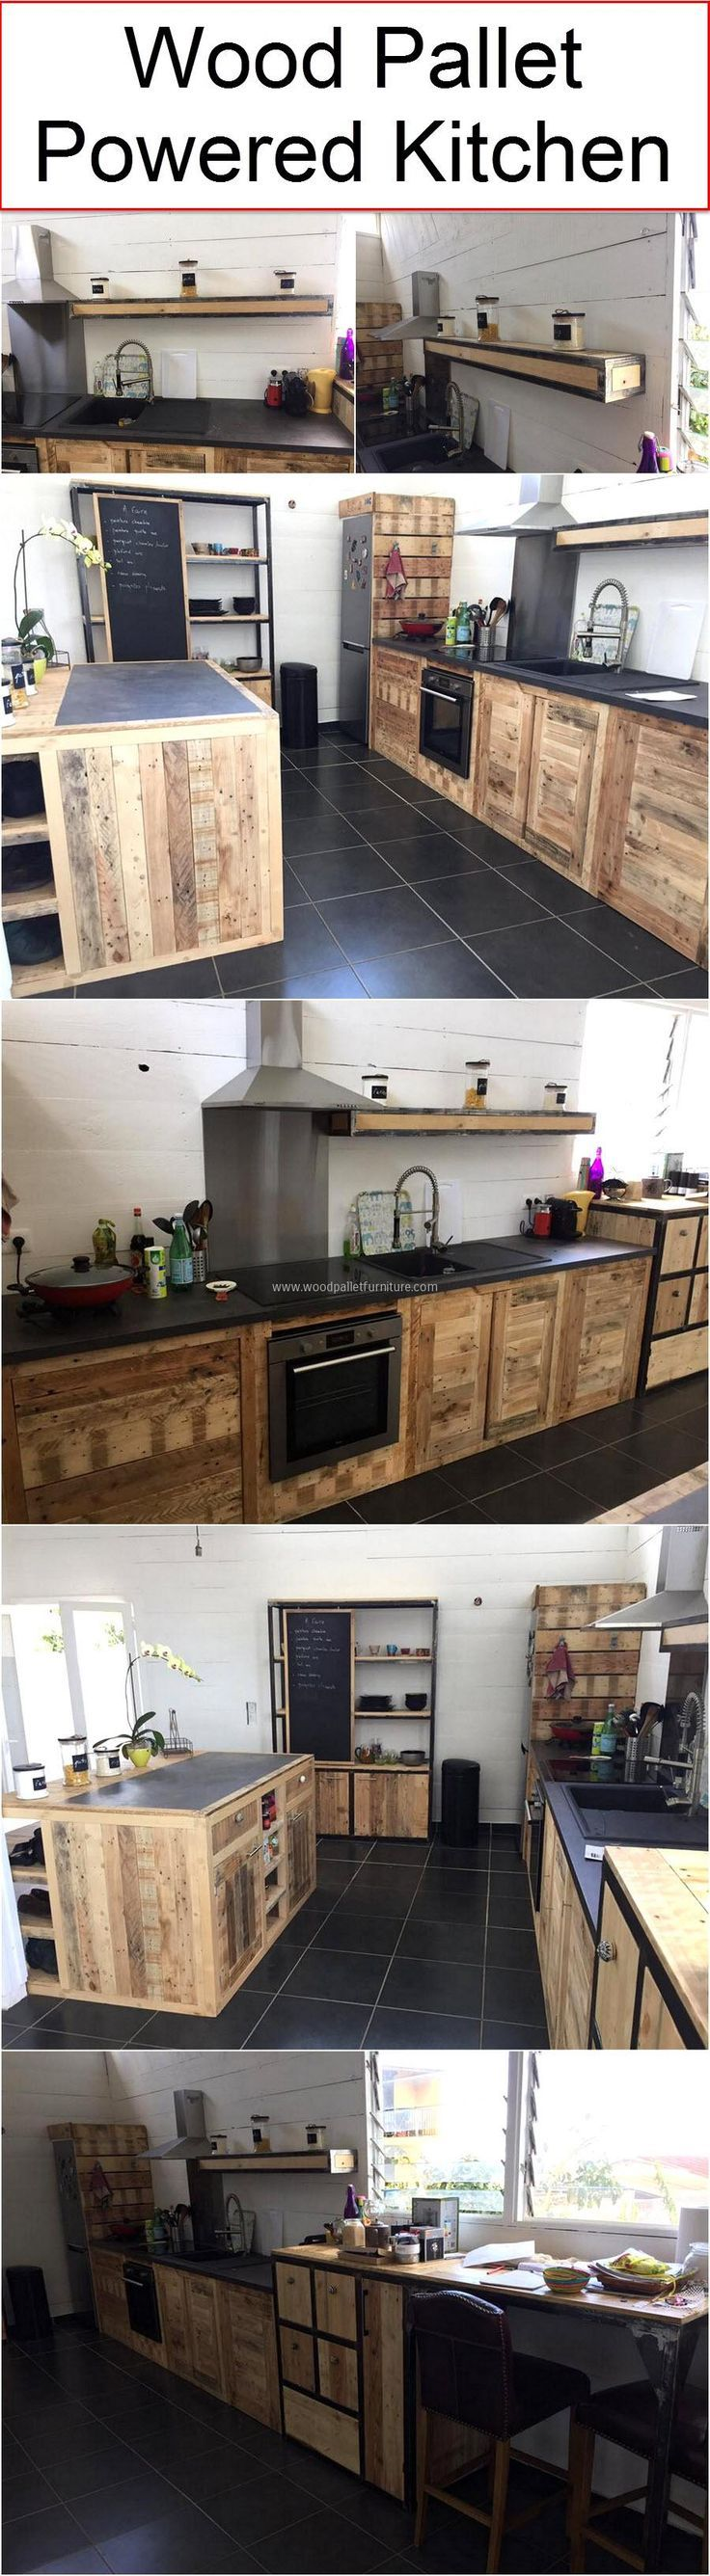 wood pallet powered kitchen creative items for home